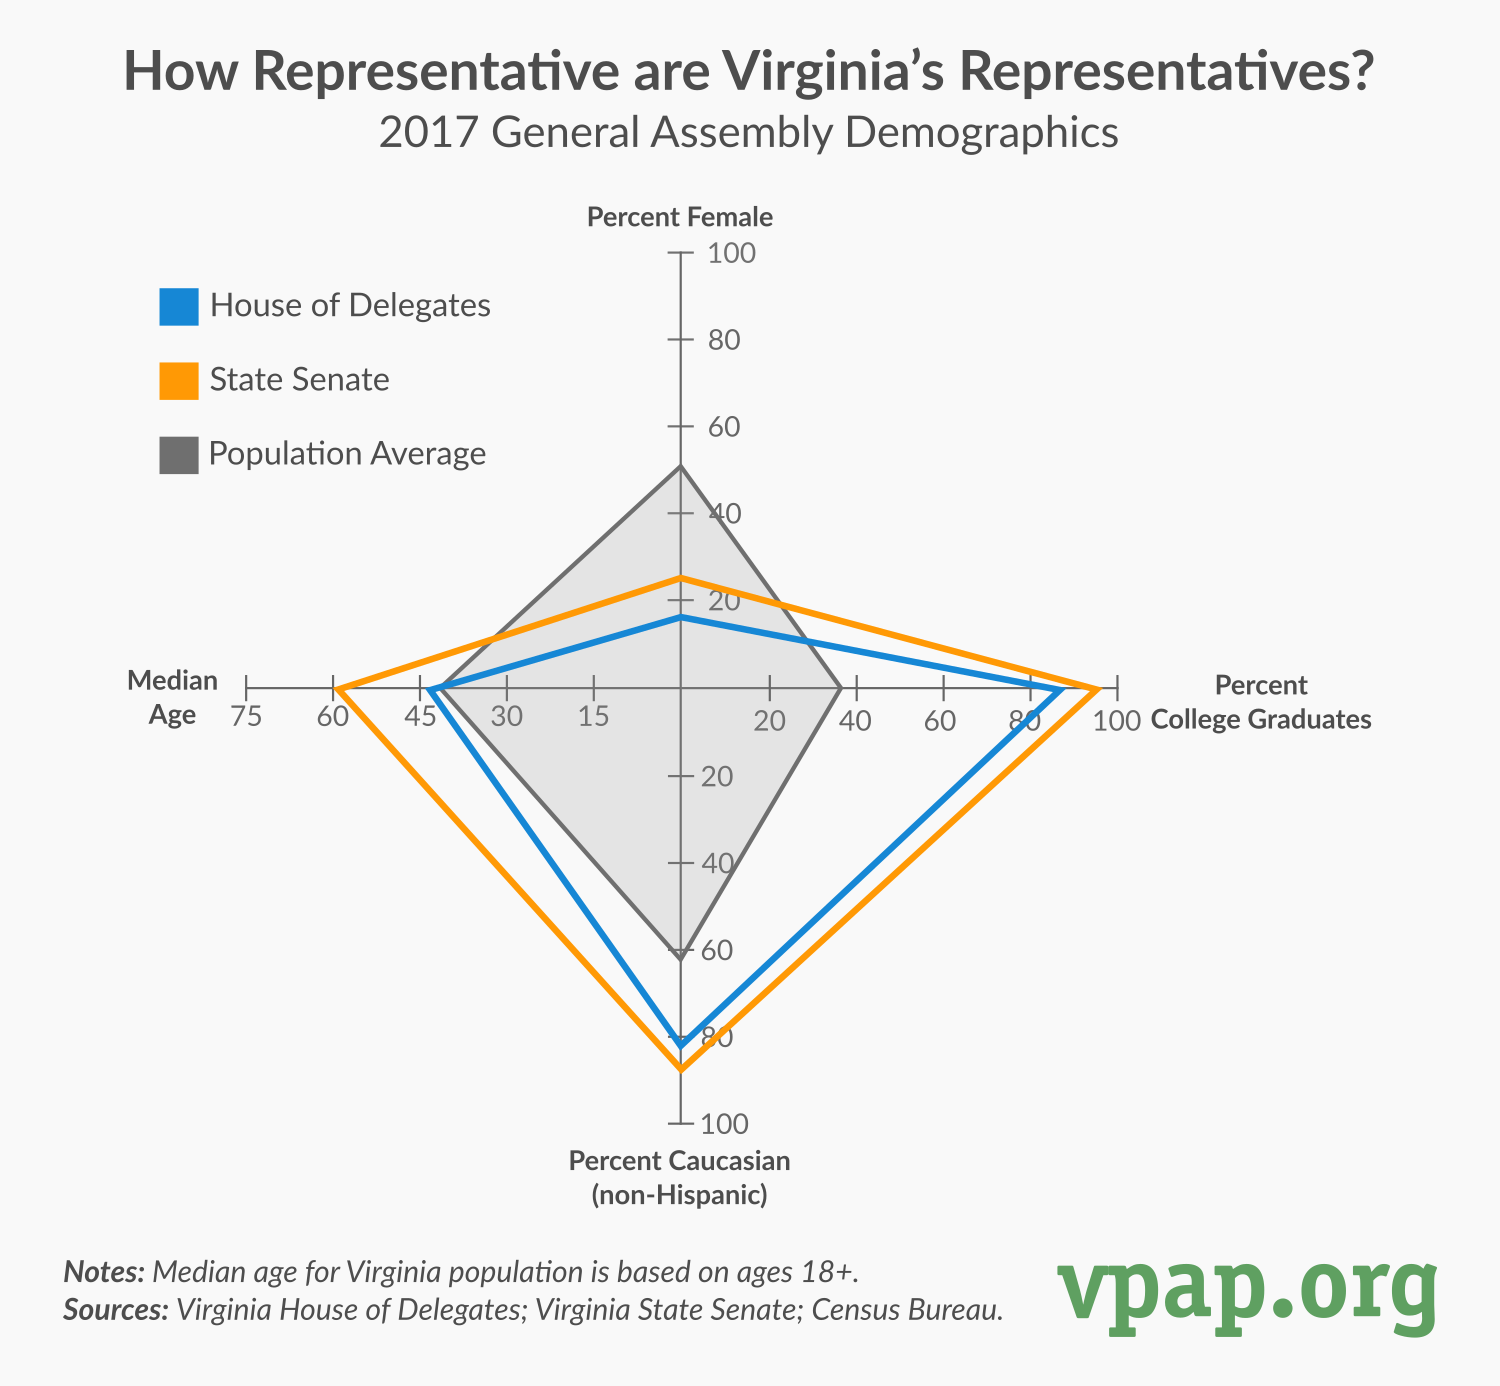 How Representative are Virginia's Representatives?